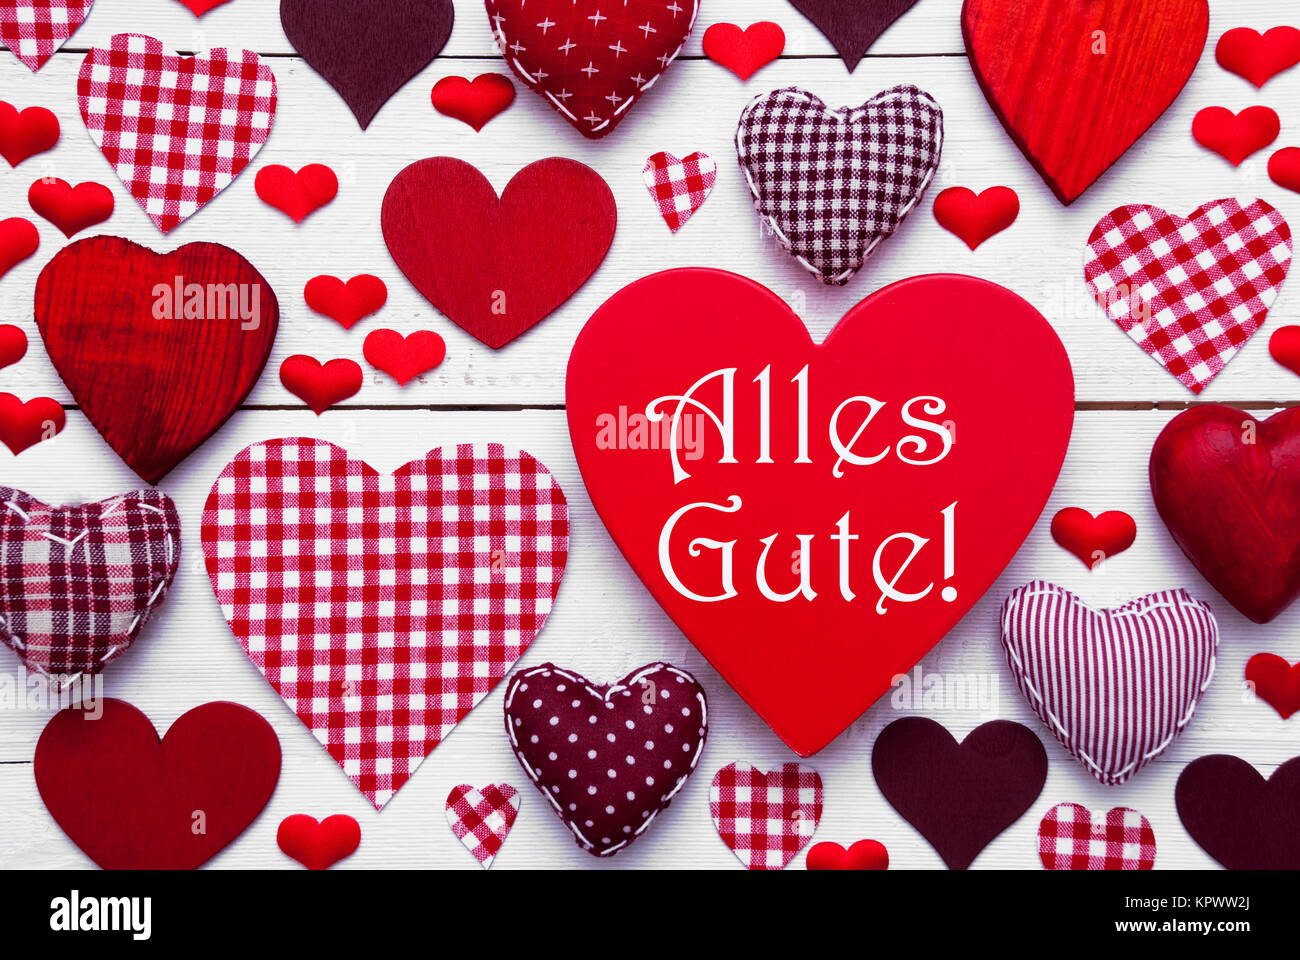 Red Heart Texture With German Text Alles Gute Means Best Wishes